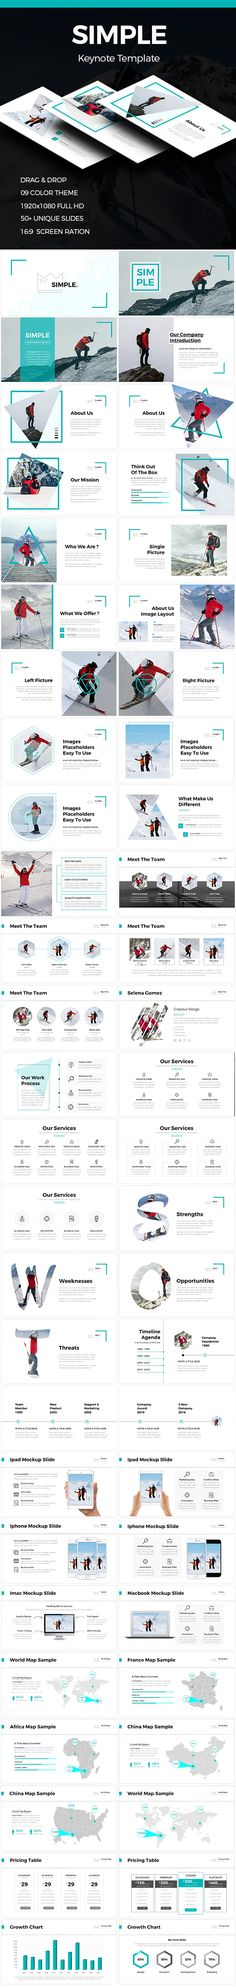 Available PowerPoint Template Business powerpoint templates - it powerpoint template